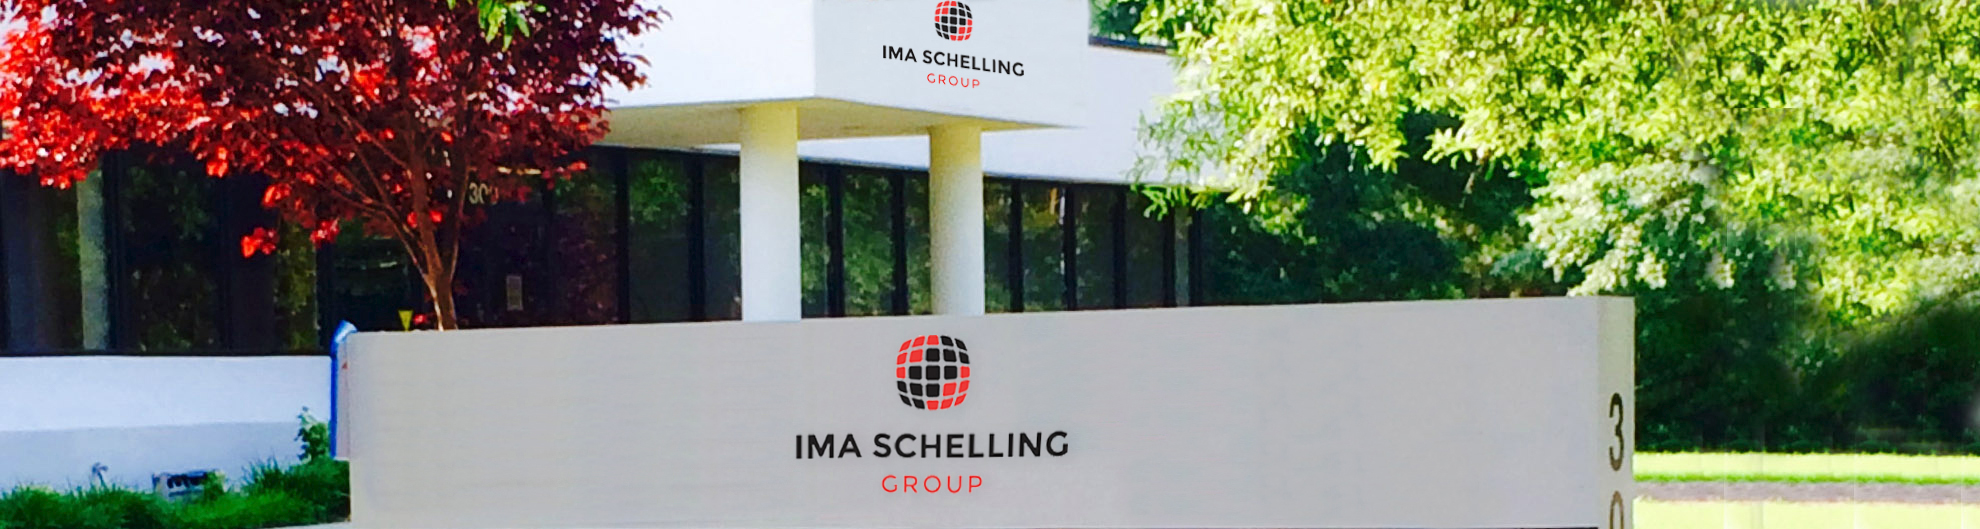 About IMA Schelling, Wood and Panel Saws, Edgebanders, Material Handling